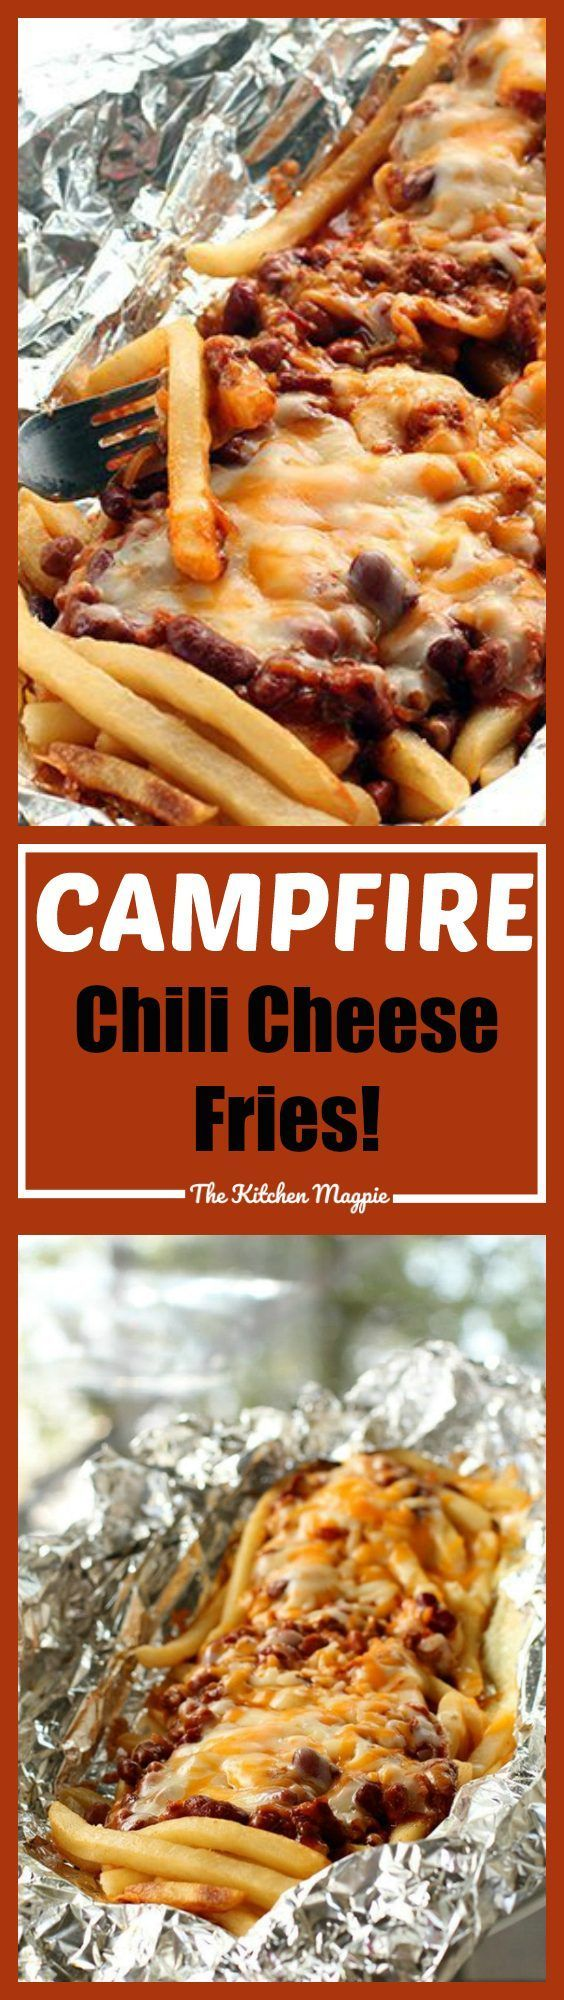 Campfire Chili Cheese Fries Tin Foil Dinner! Kids and adults alike will love this fun meal! #camping #campfire #recipes #fries #chili #cheese